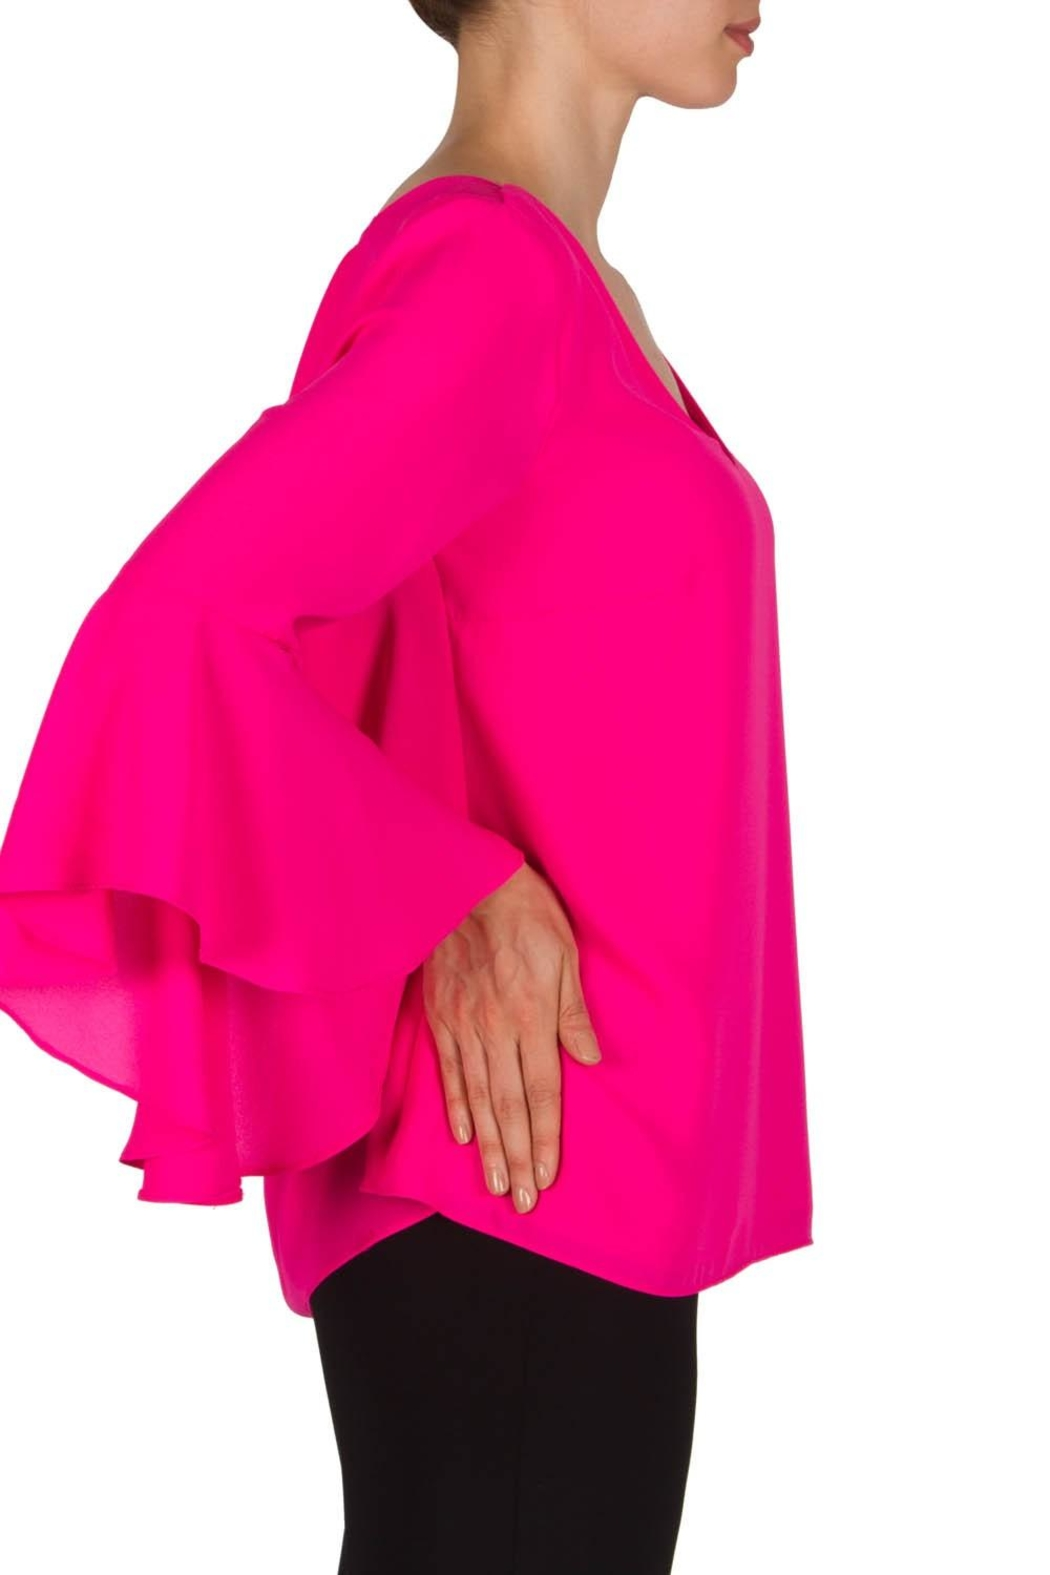 Joseph Ribkoff Pink Top - Side Cropped Image